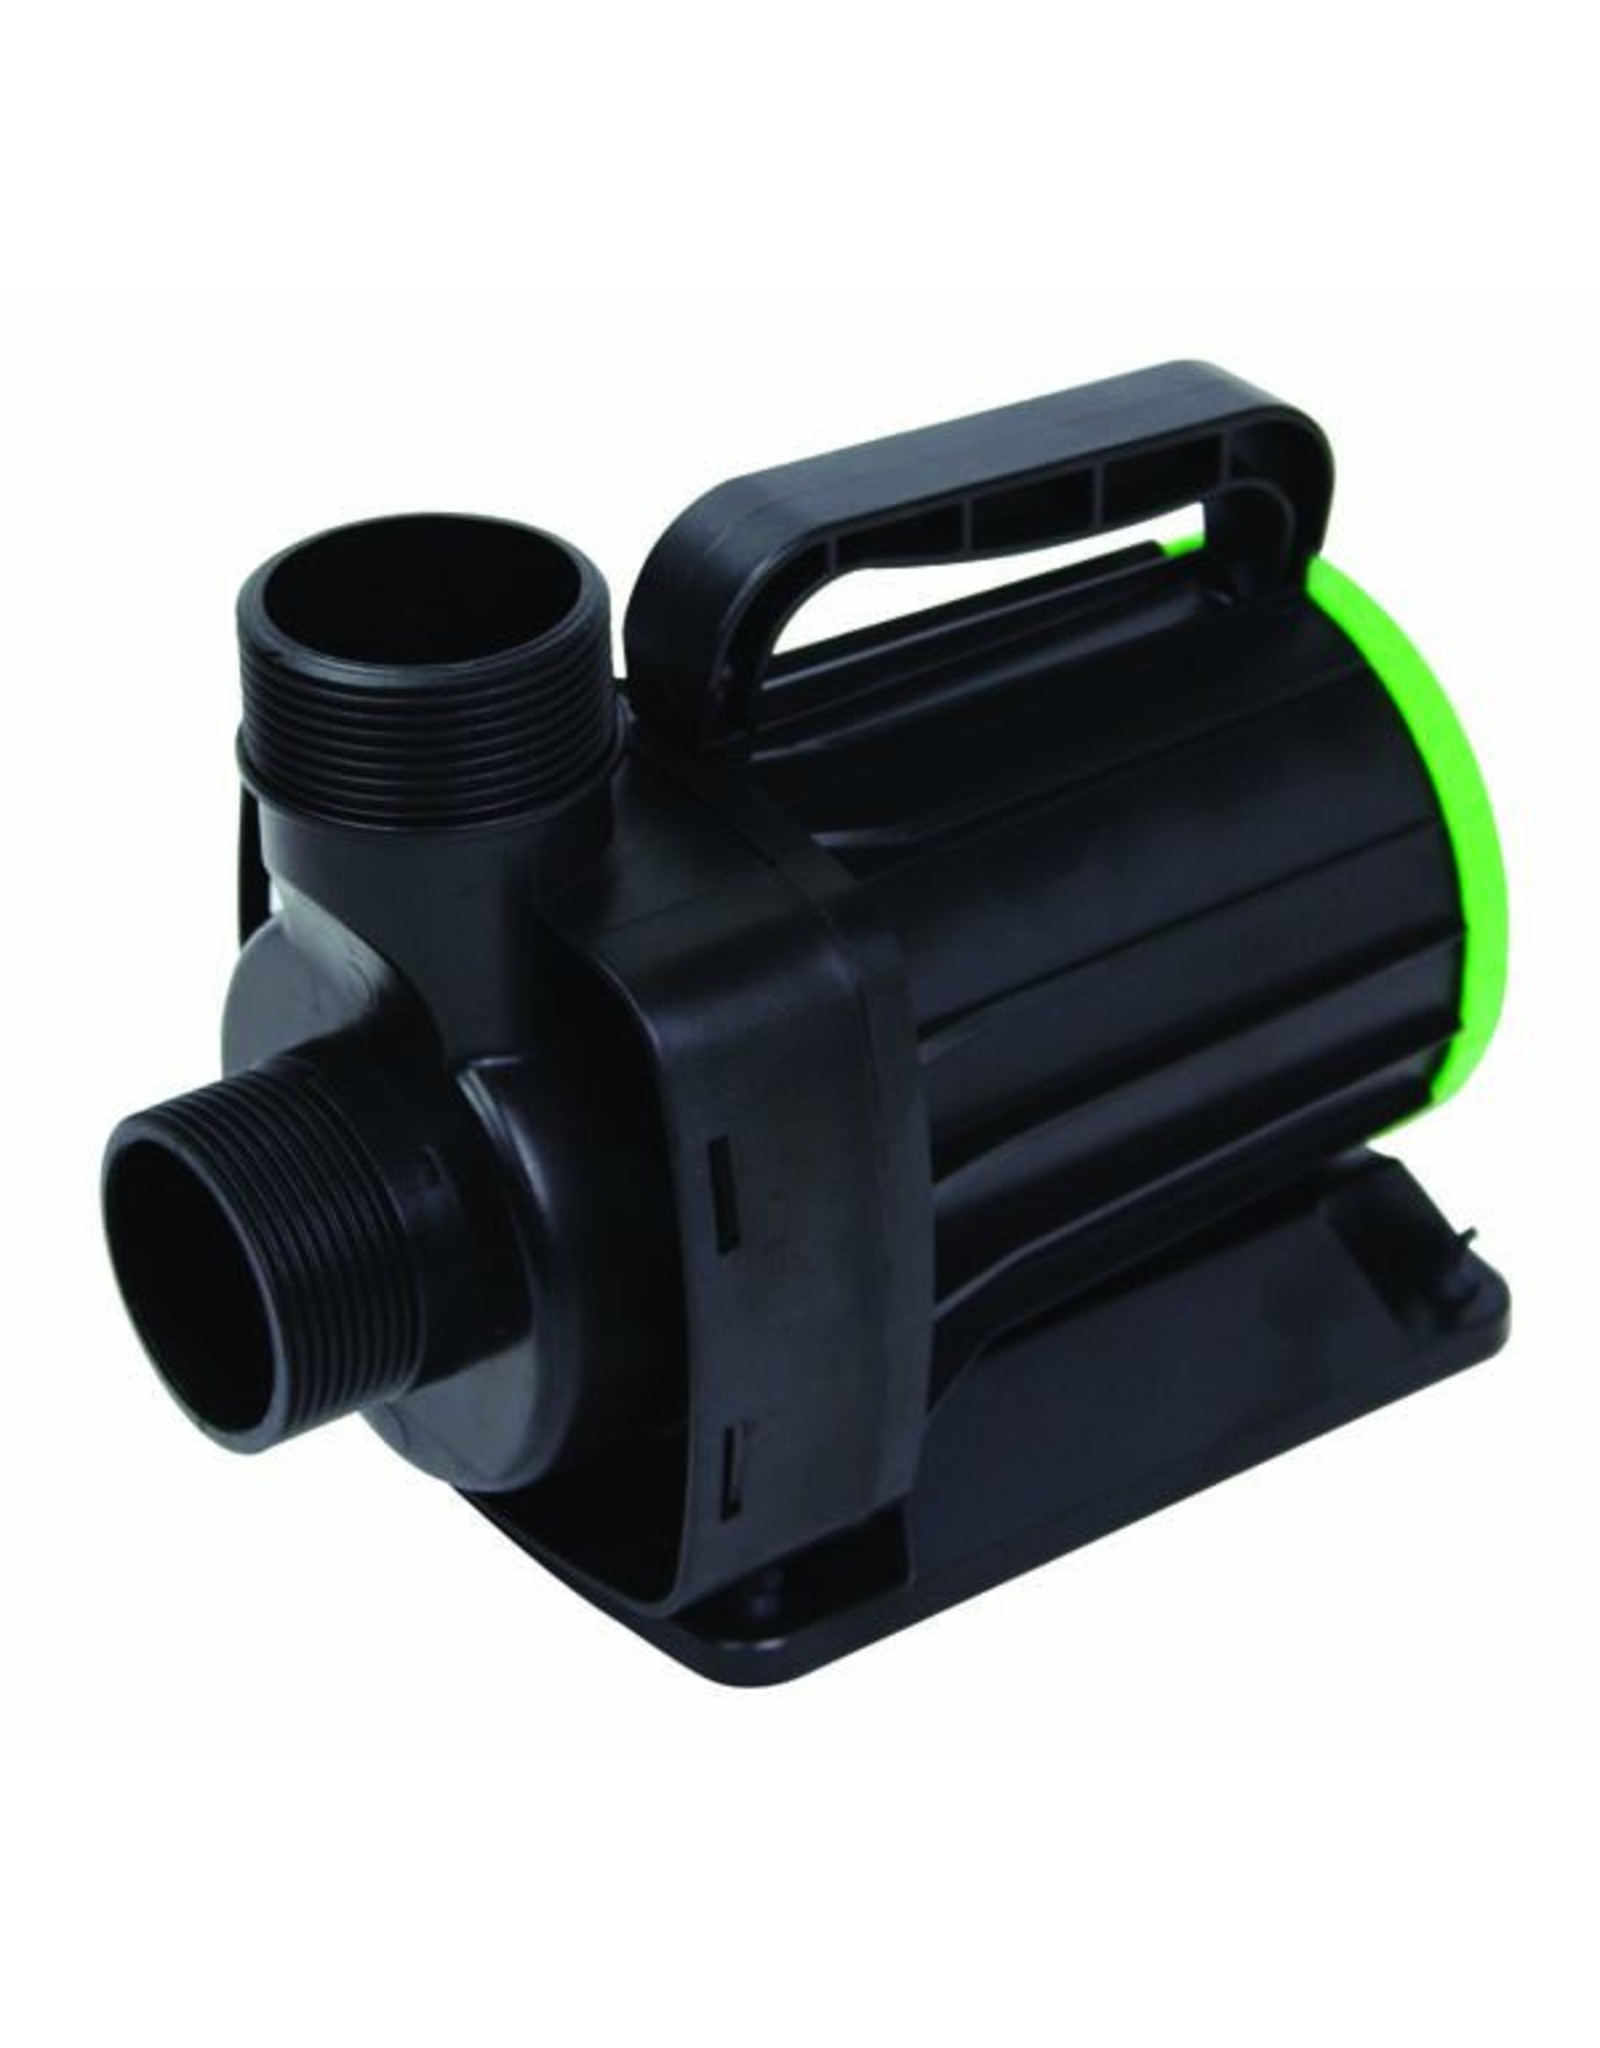 Aquaking AQUAKING EGP2 ECO POND PUMP